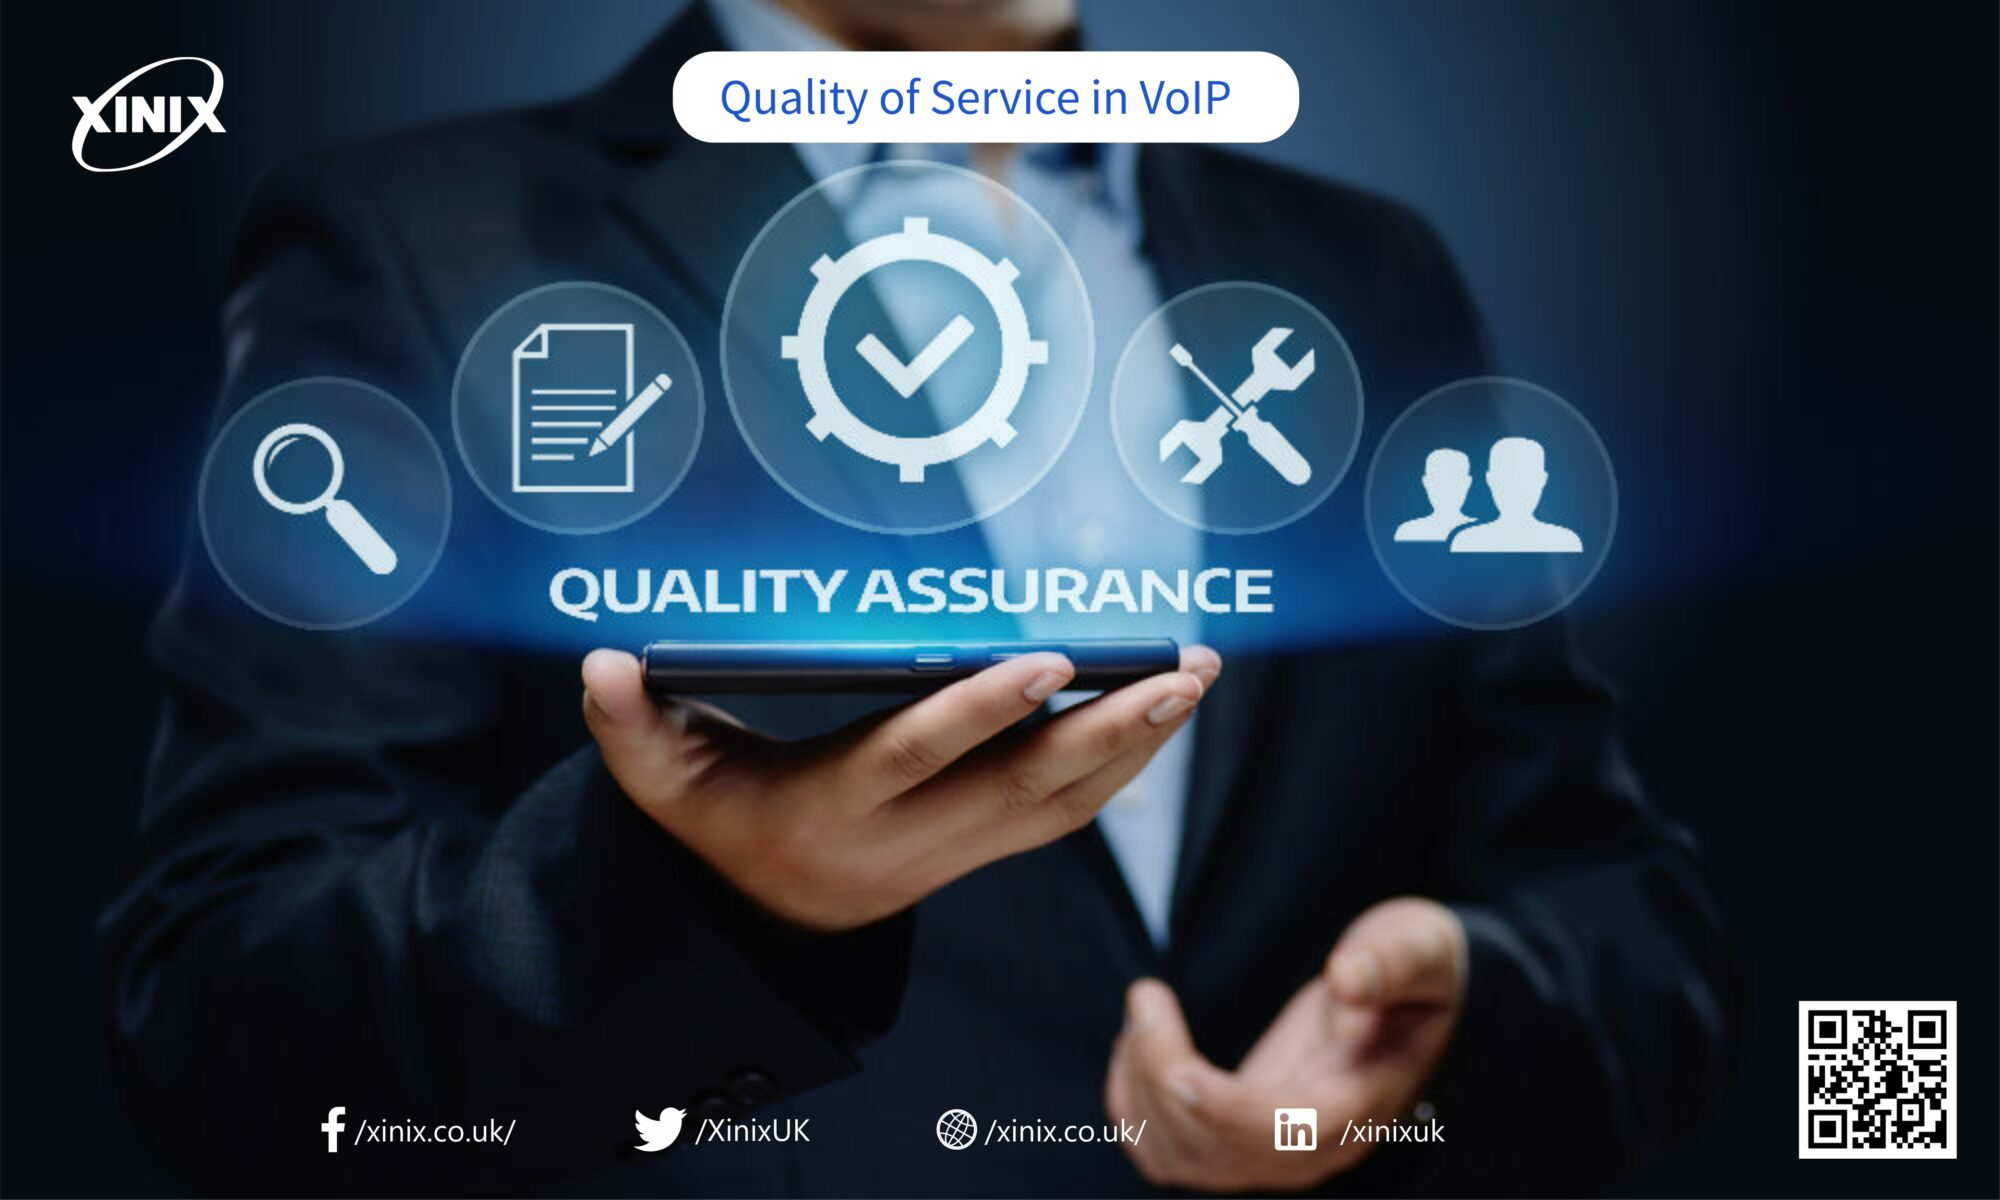 Quality of Service in VoIP